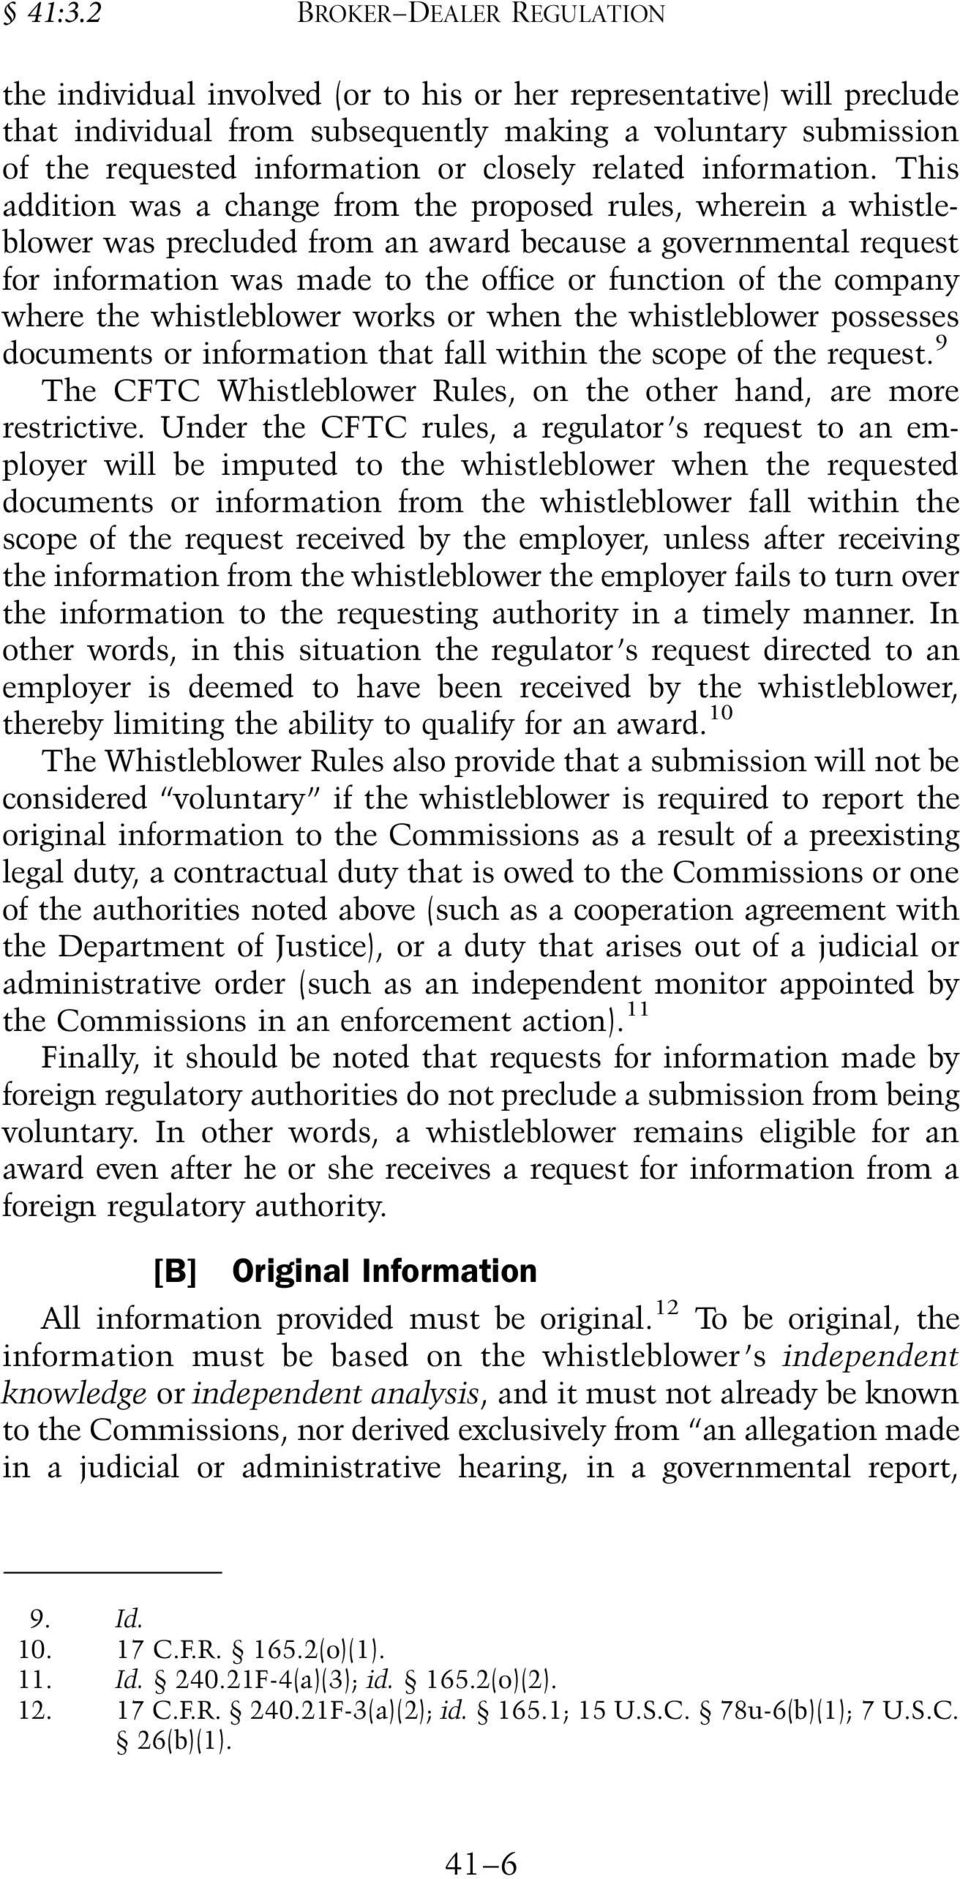 This addition was a change from the proposed rules, wherein a whistleblower was precluded from an award because a governmental request for information was made to the office or function of the